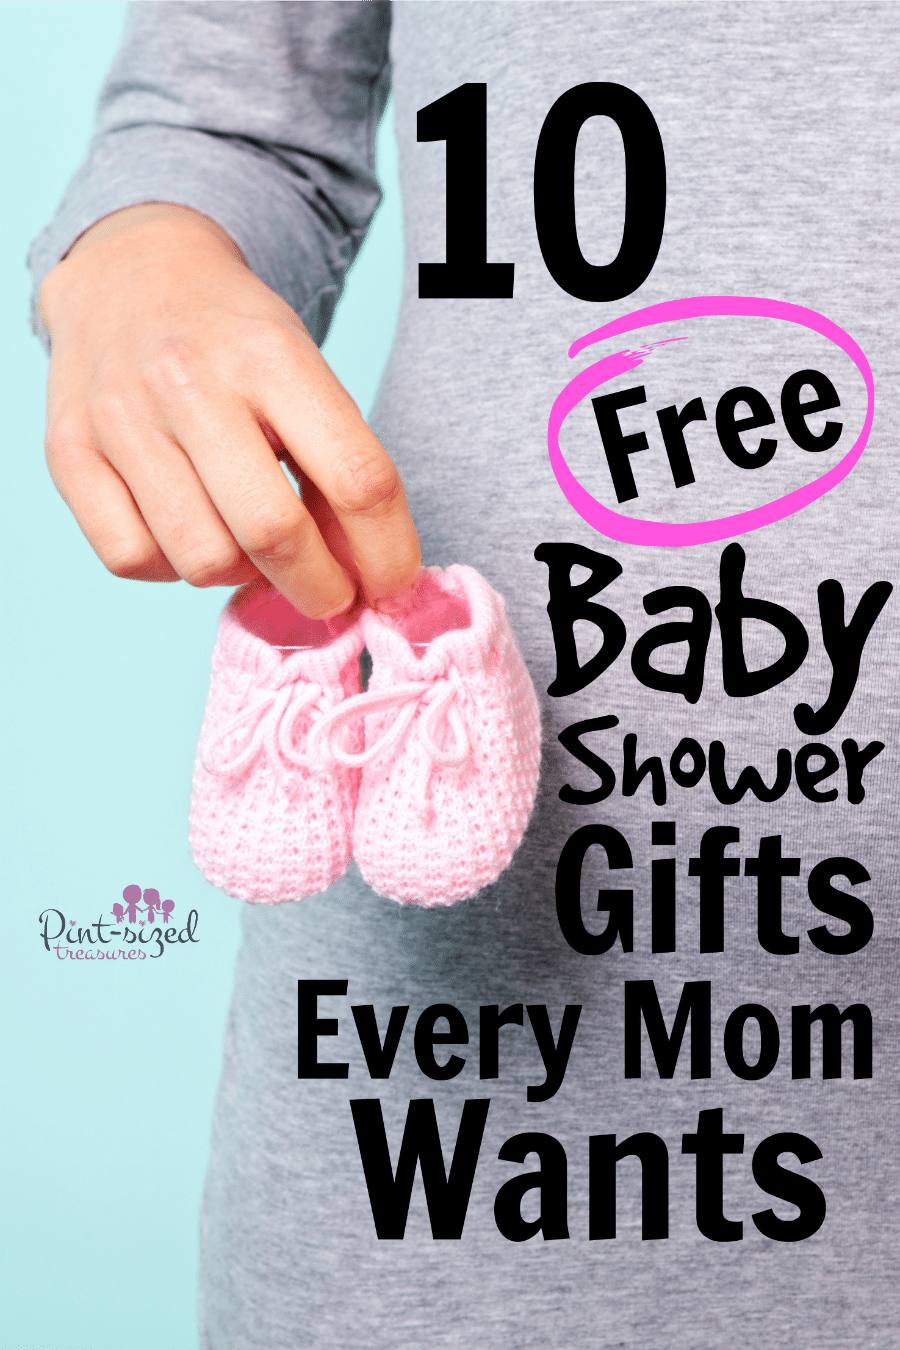 10 free baby shower gifts every mom wants pint sized treasures free baby shower gifts every mom wants negle Gallery